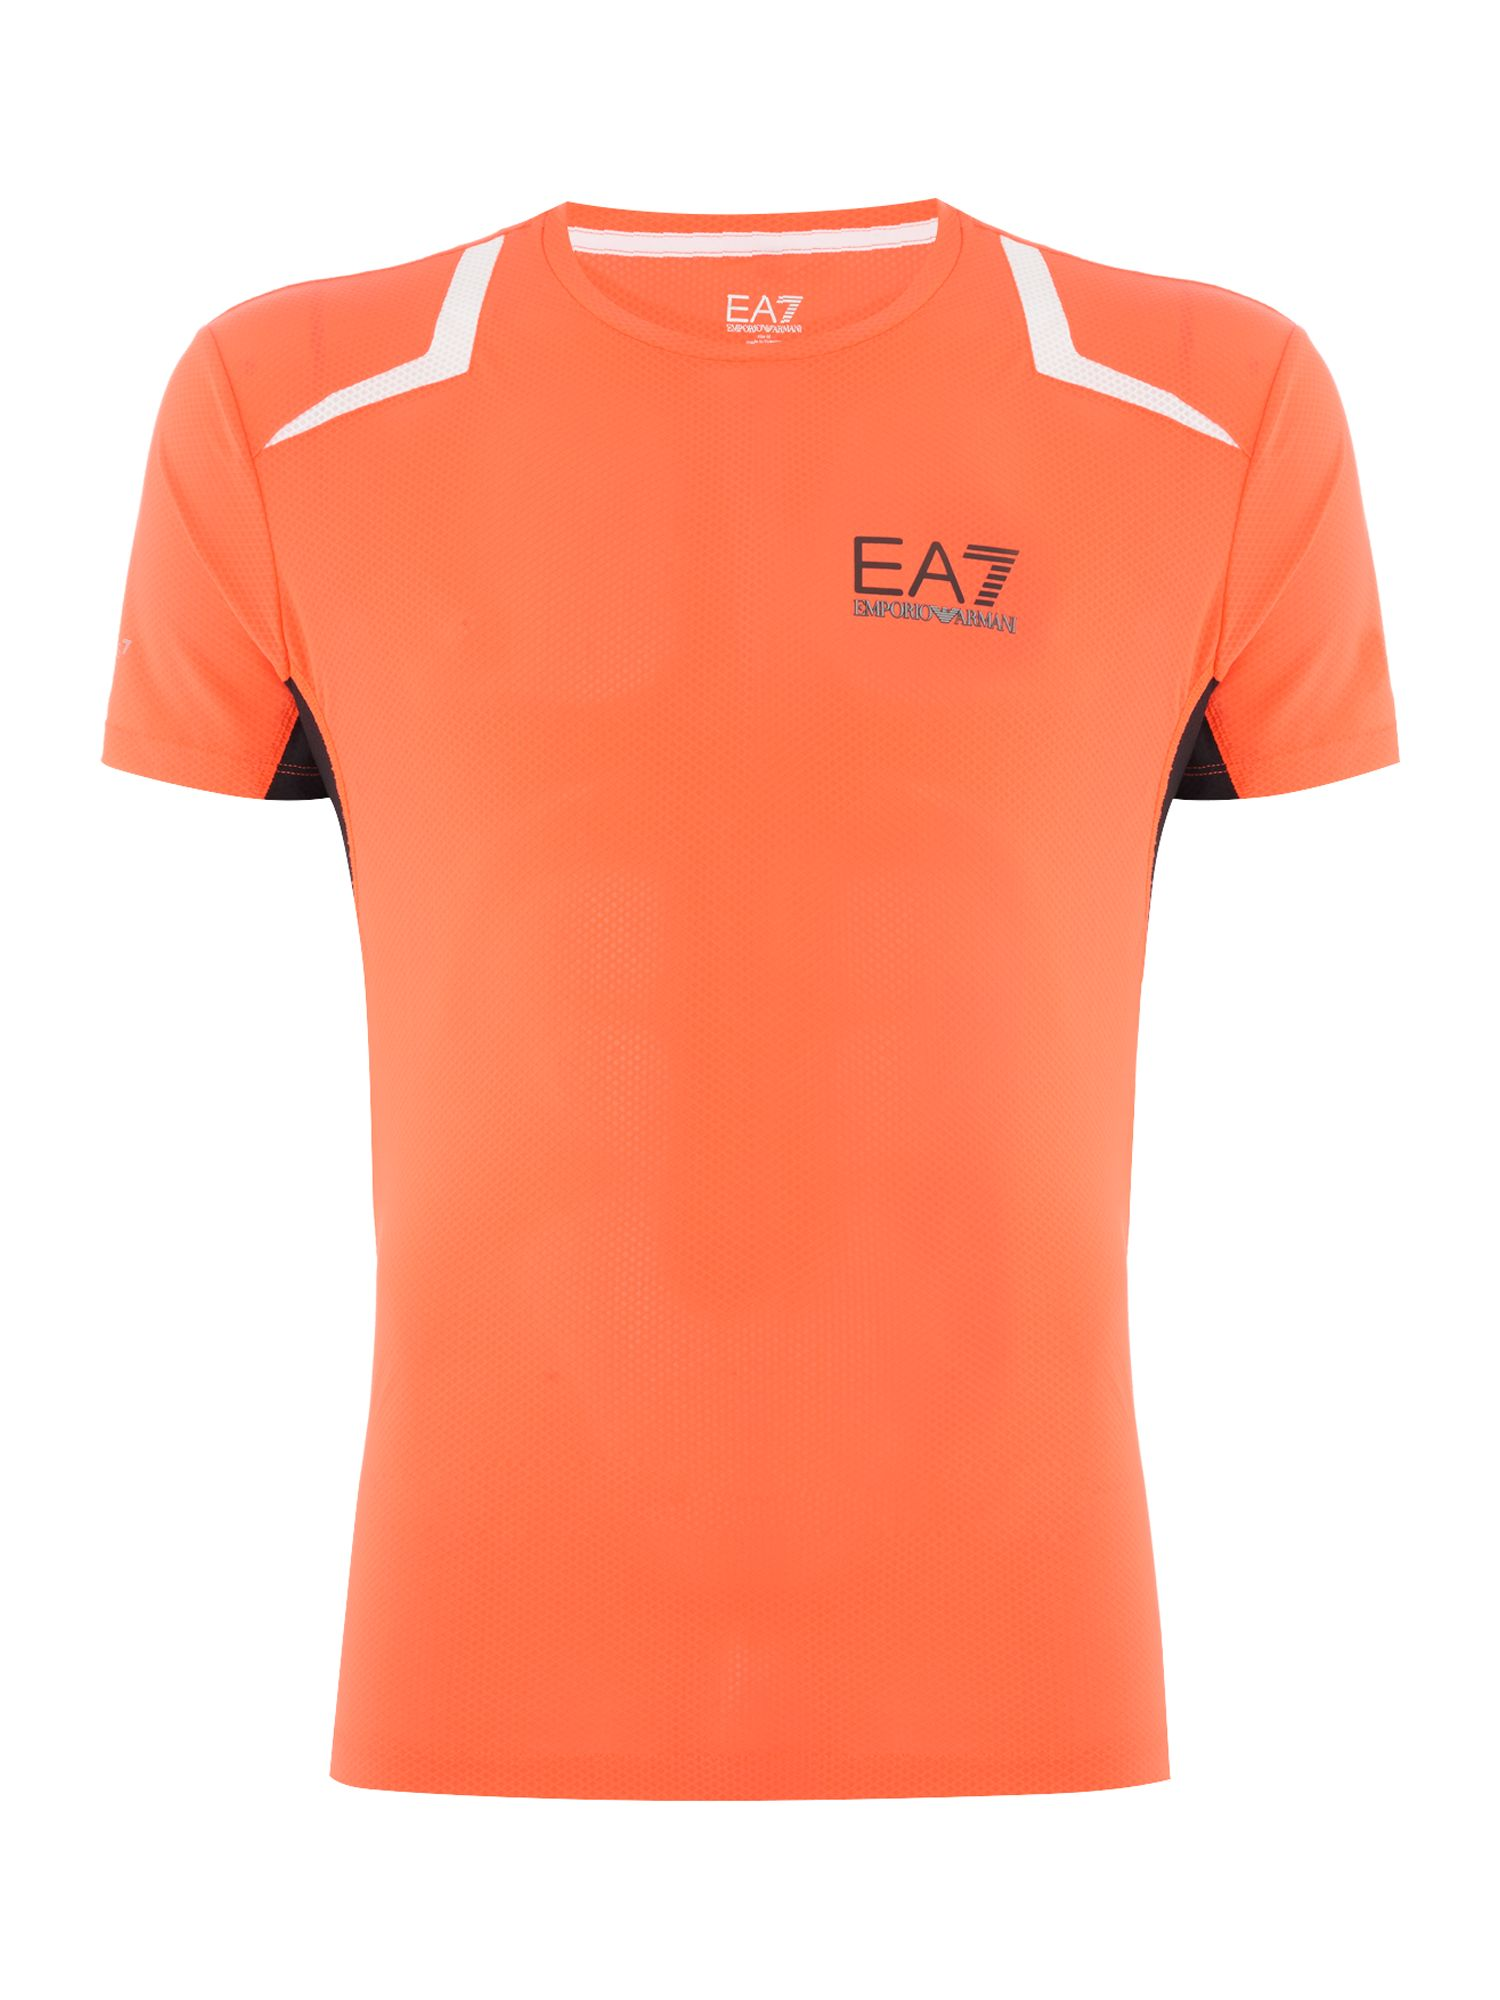 Men's EA7 Ventus Performance Short-Sleeve T-shirt, Red